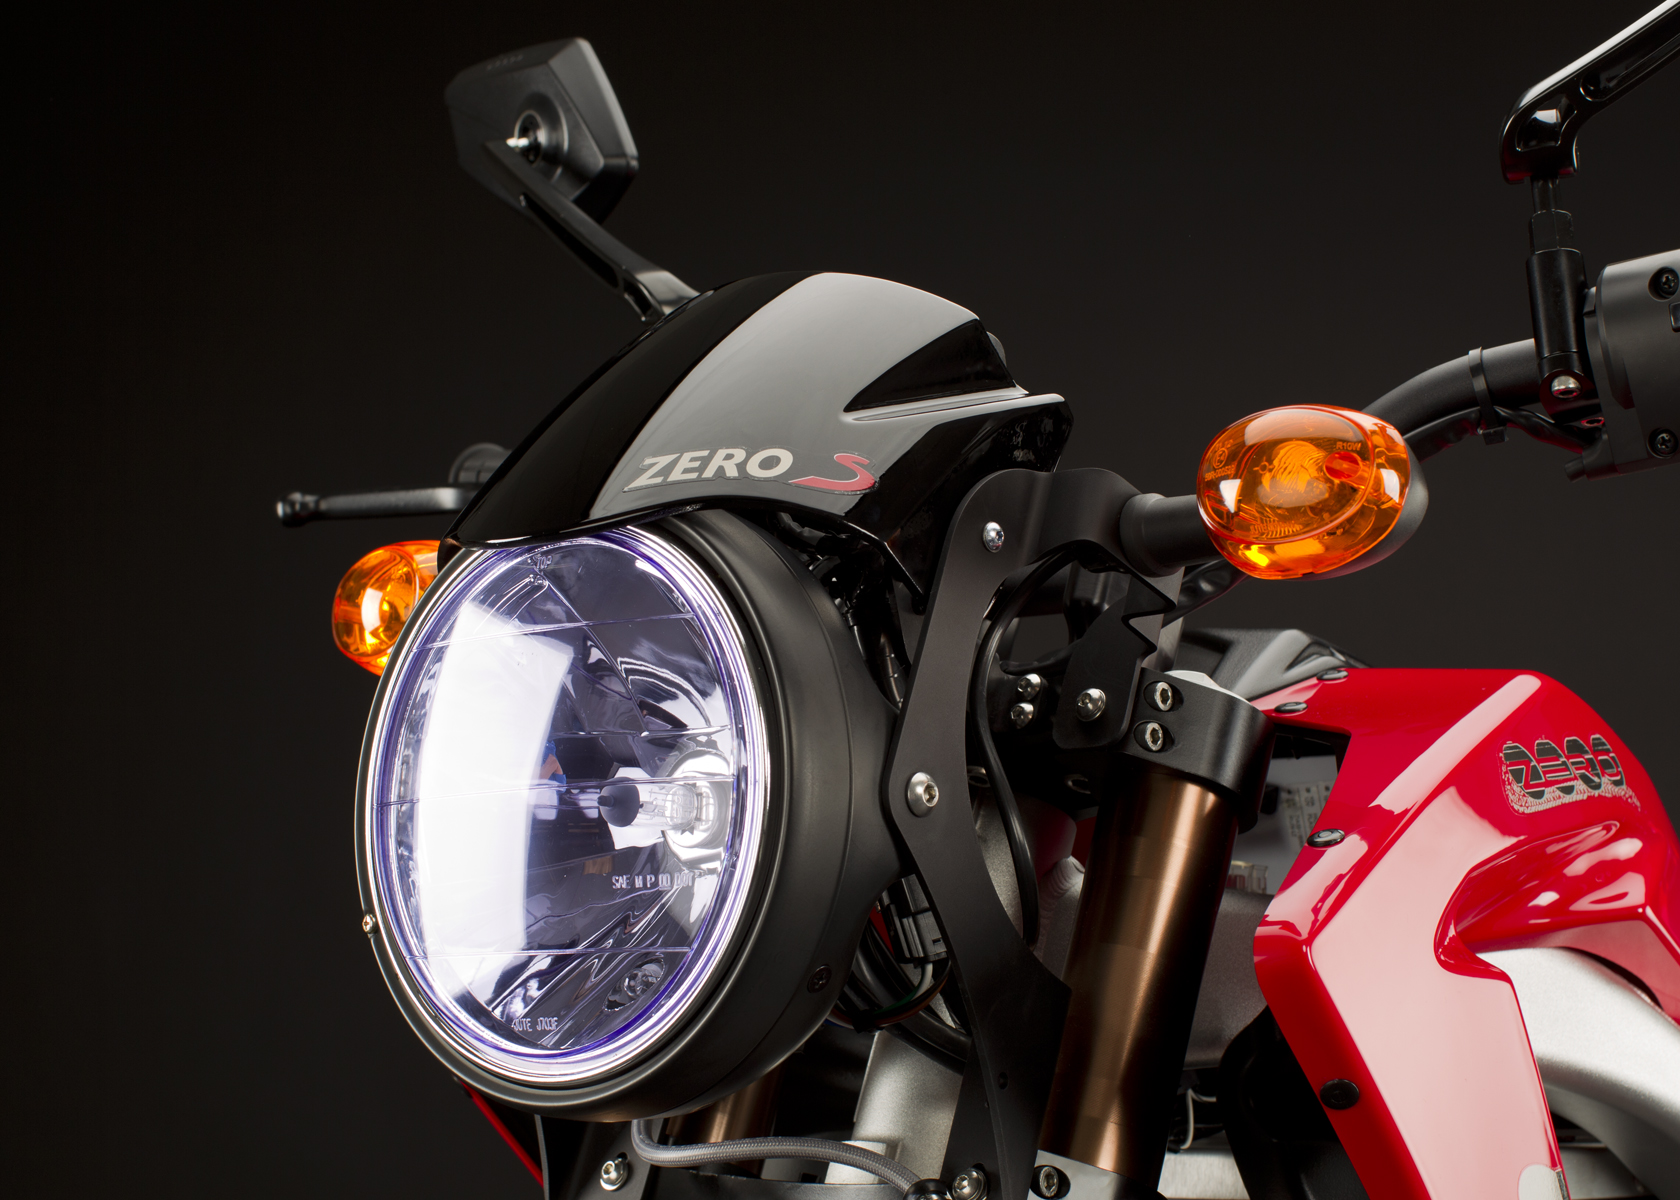 '.2011 Zero S Electric Motorcycle: Turn Signal.'